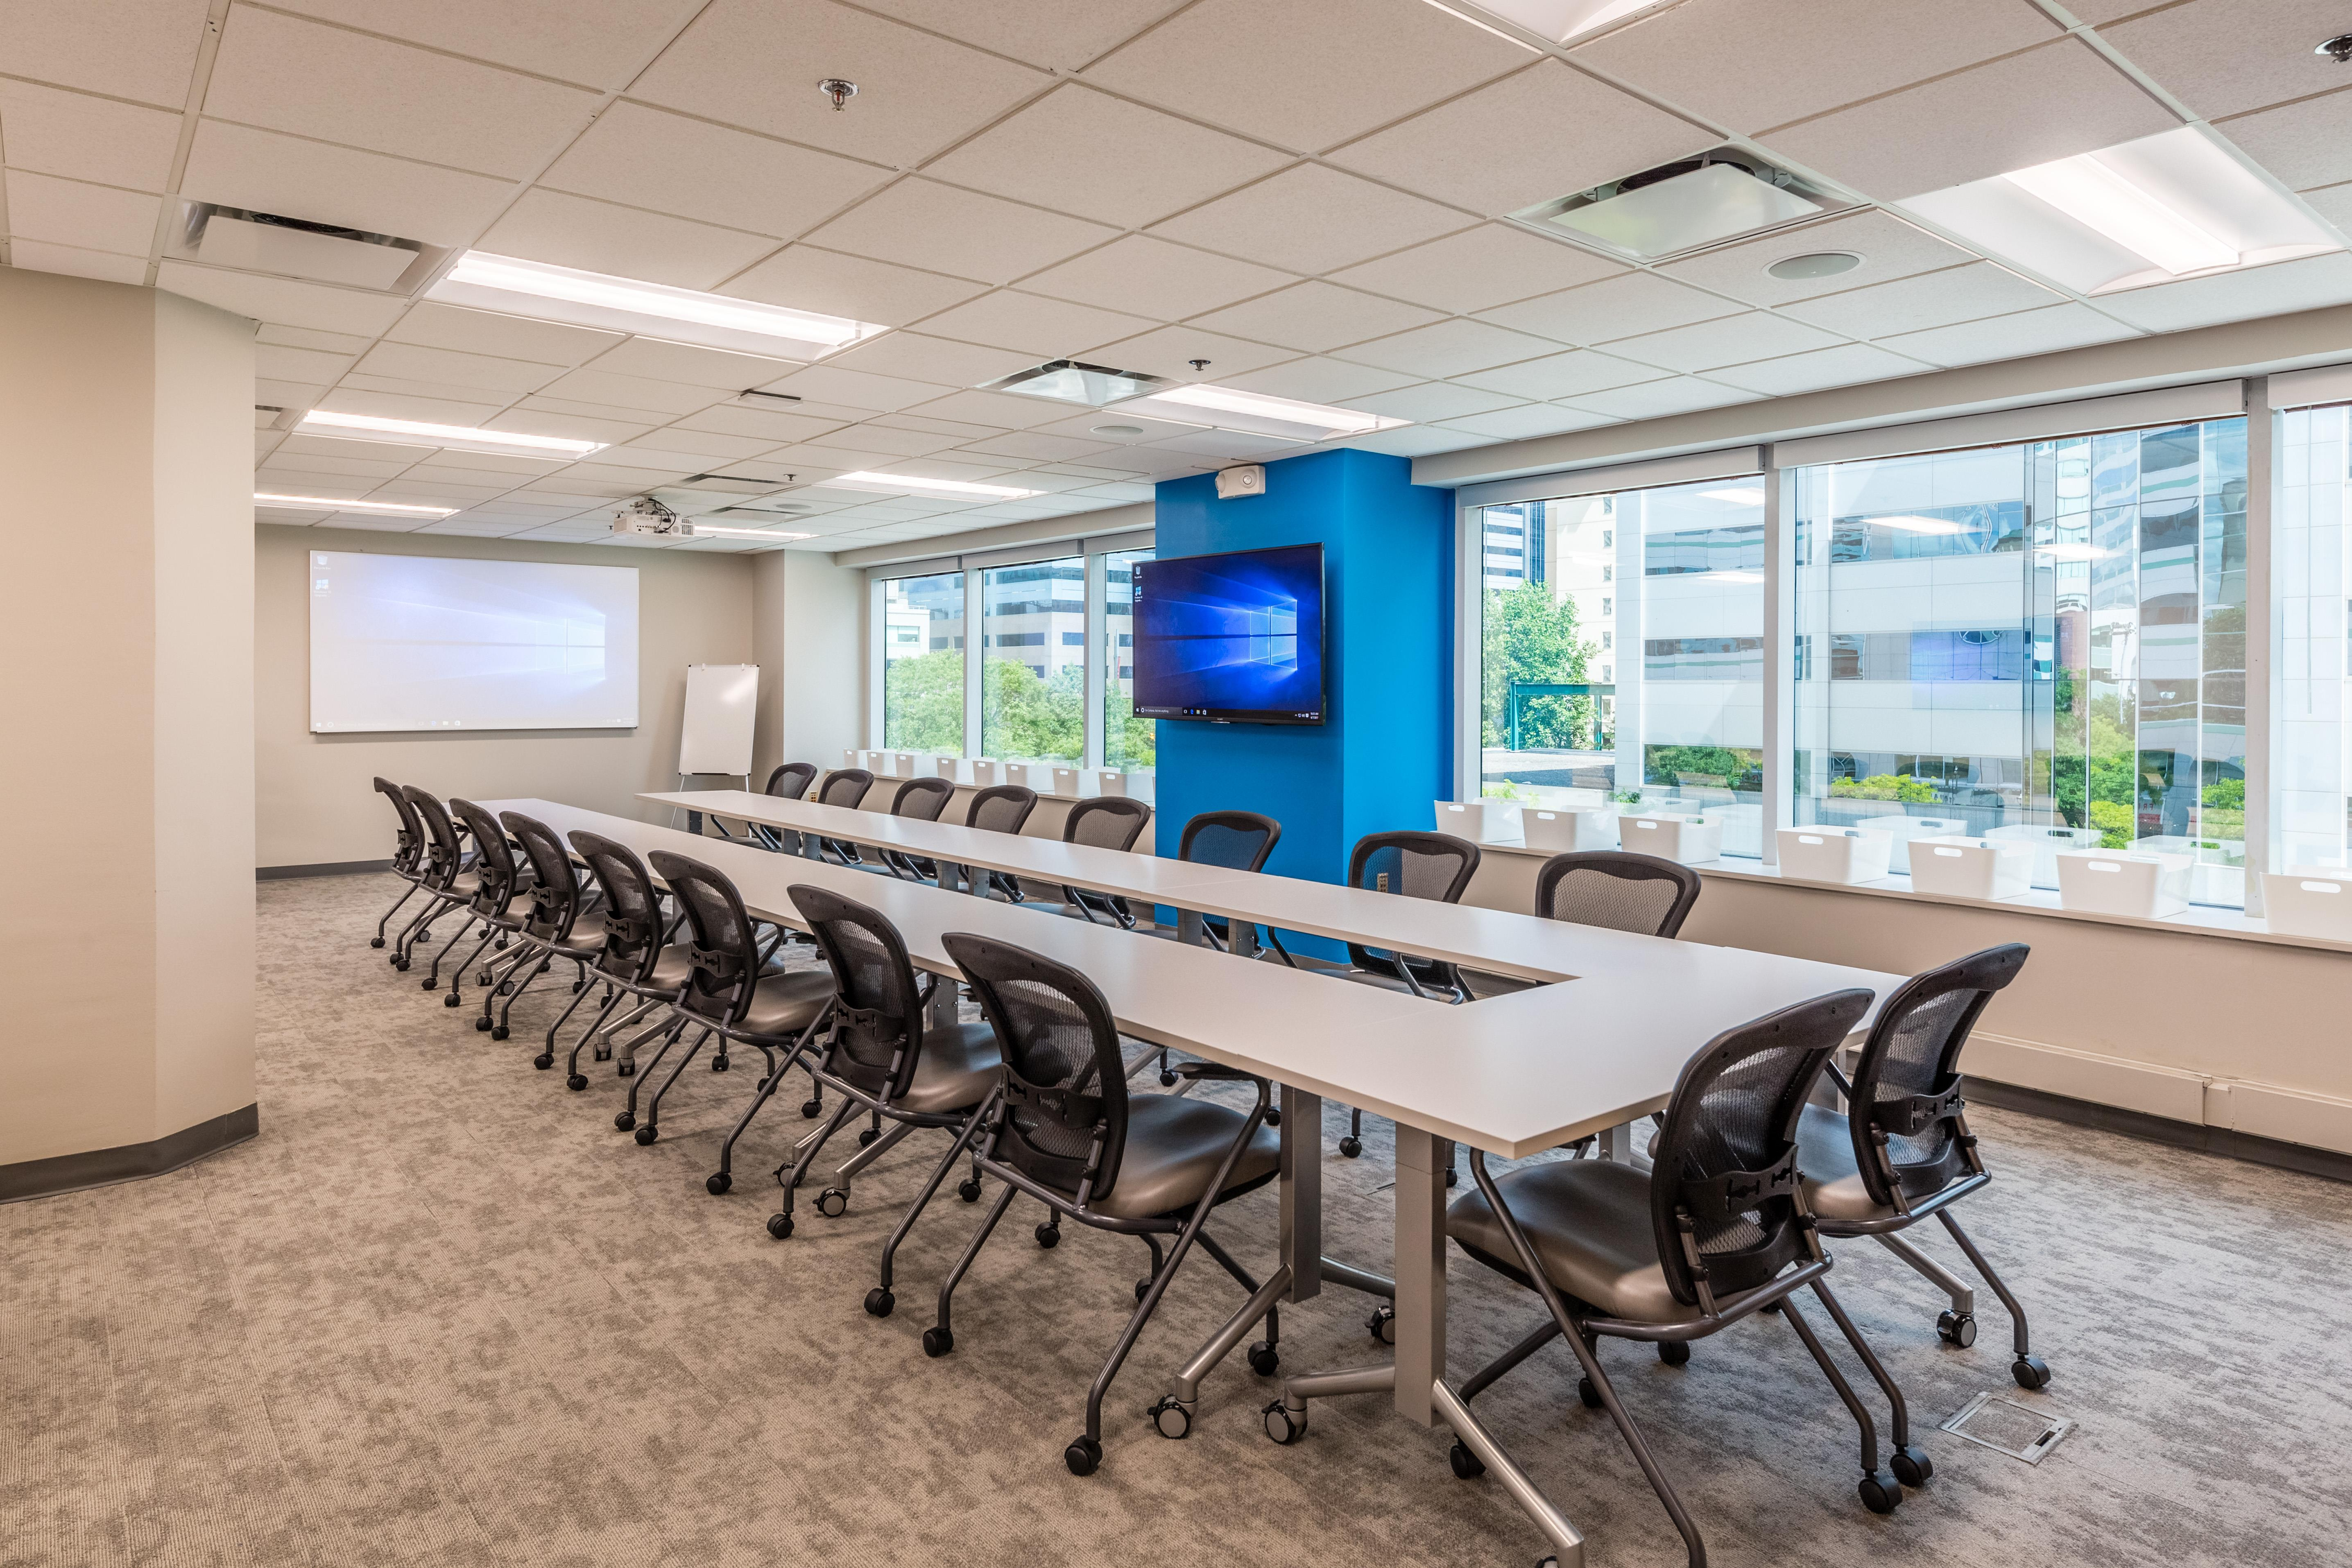 Worksocial | Shared Office Space - Training Room